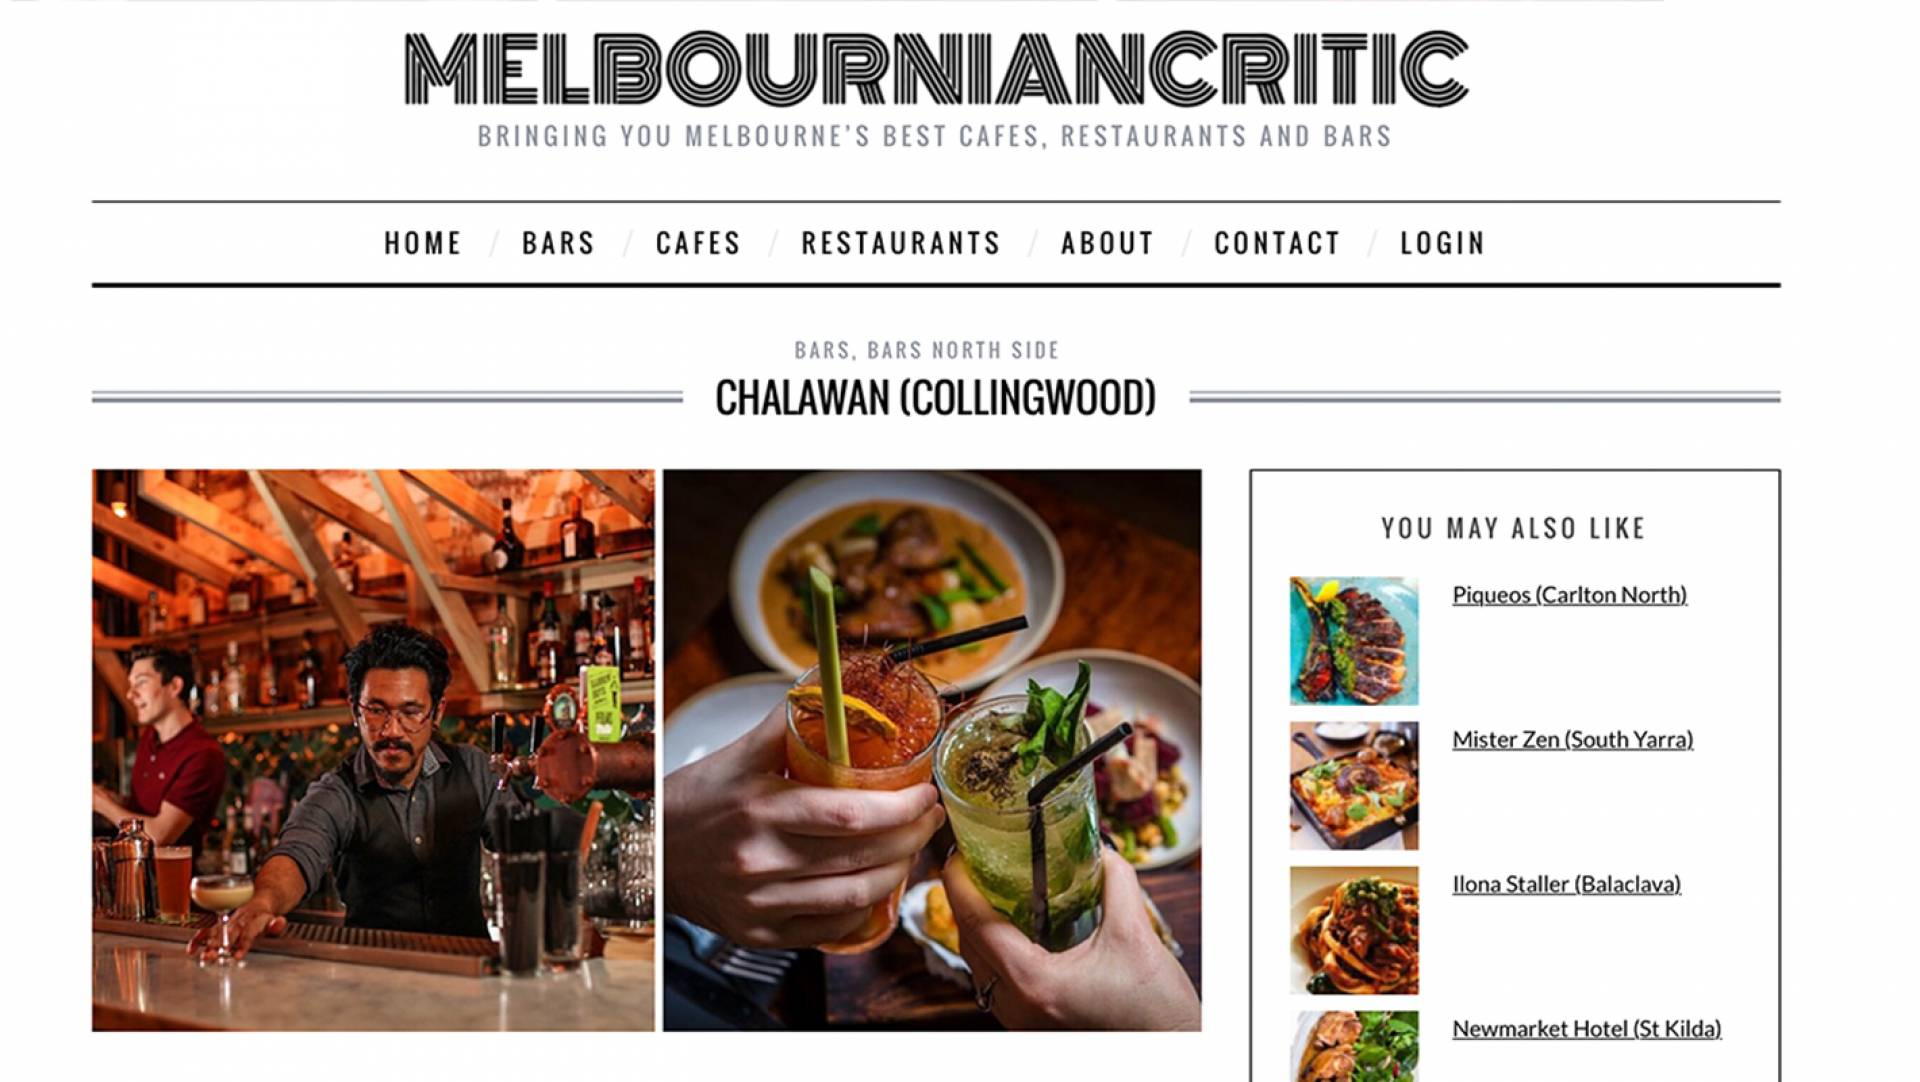 The Melbournian Critic highlights Chalawan